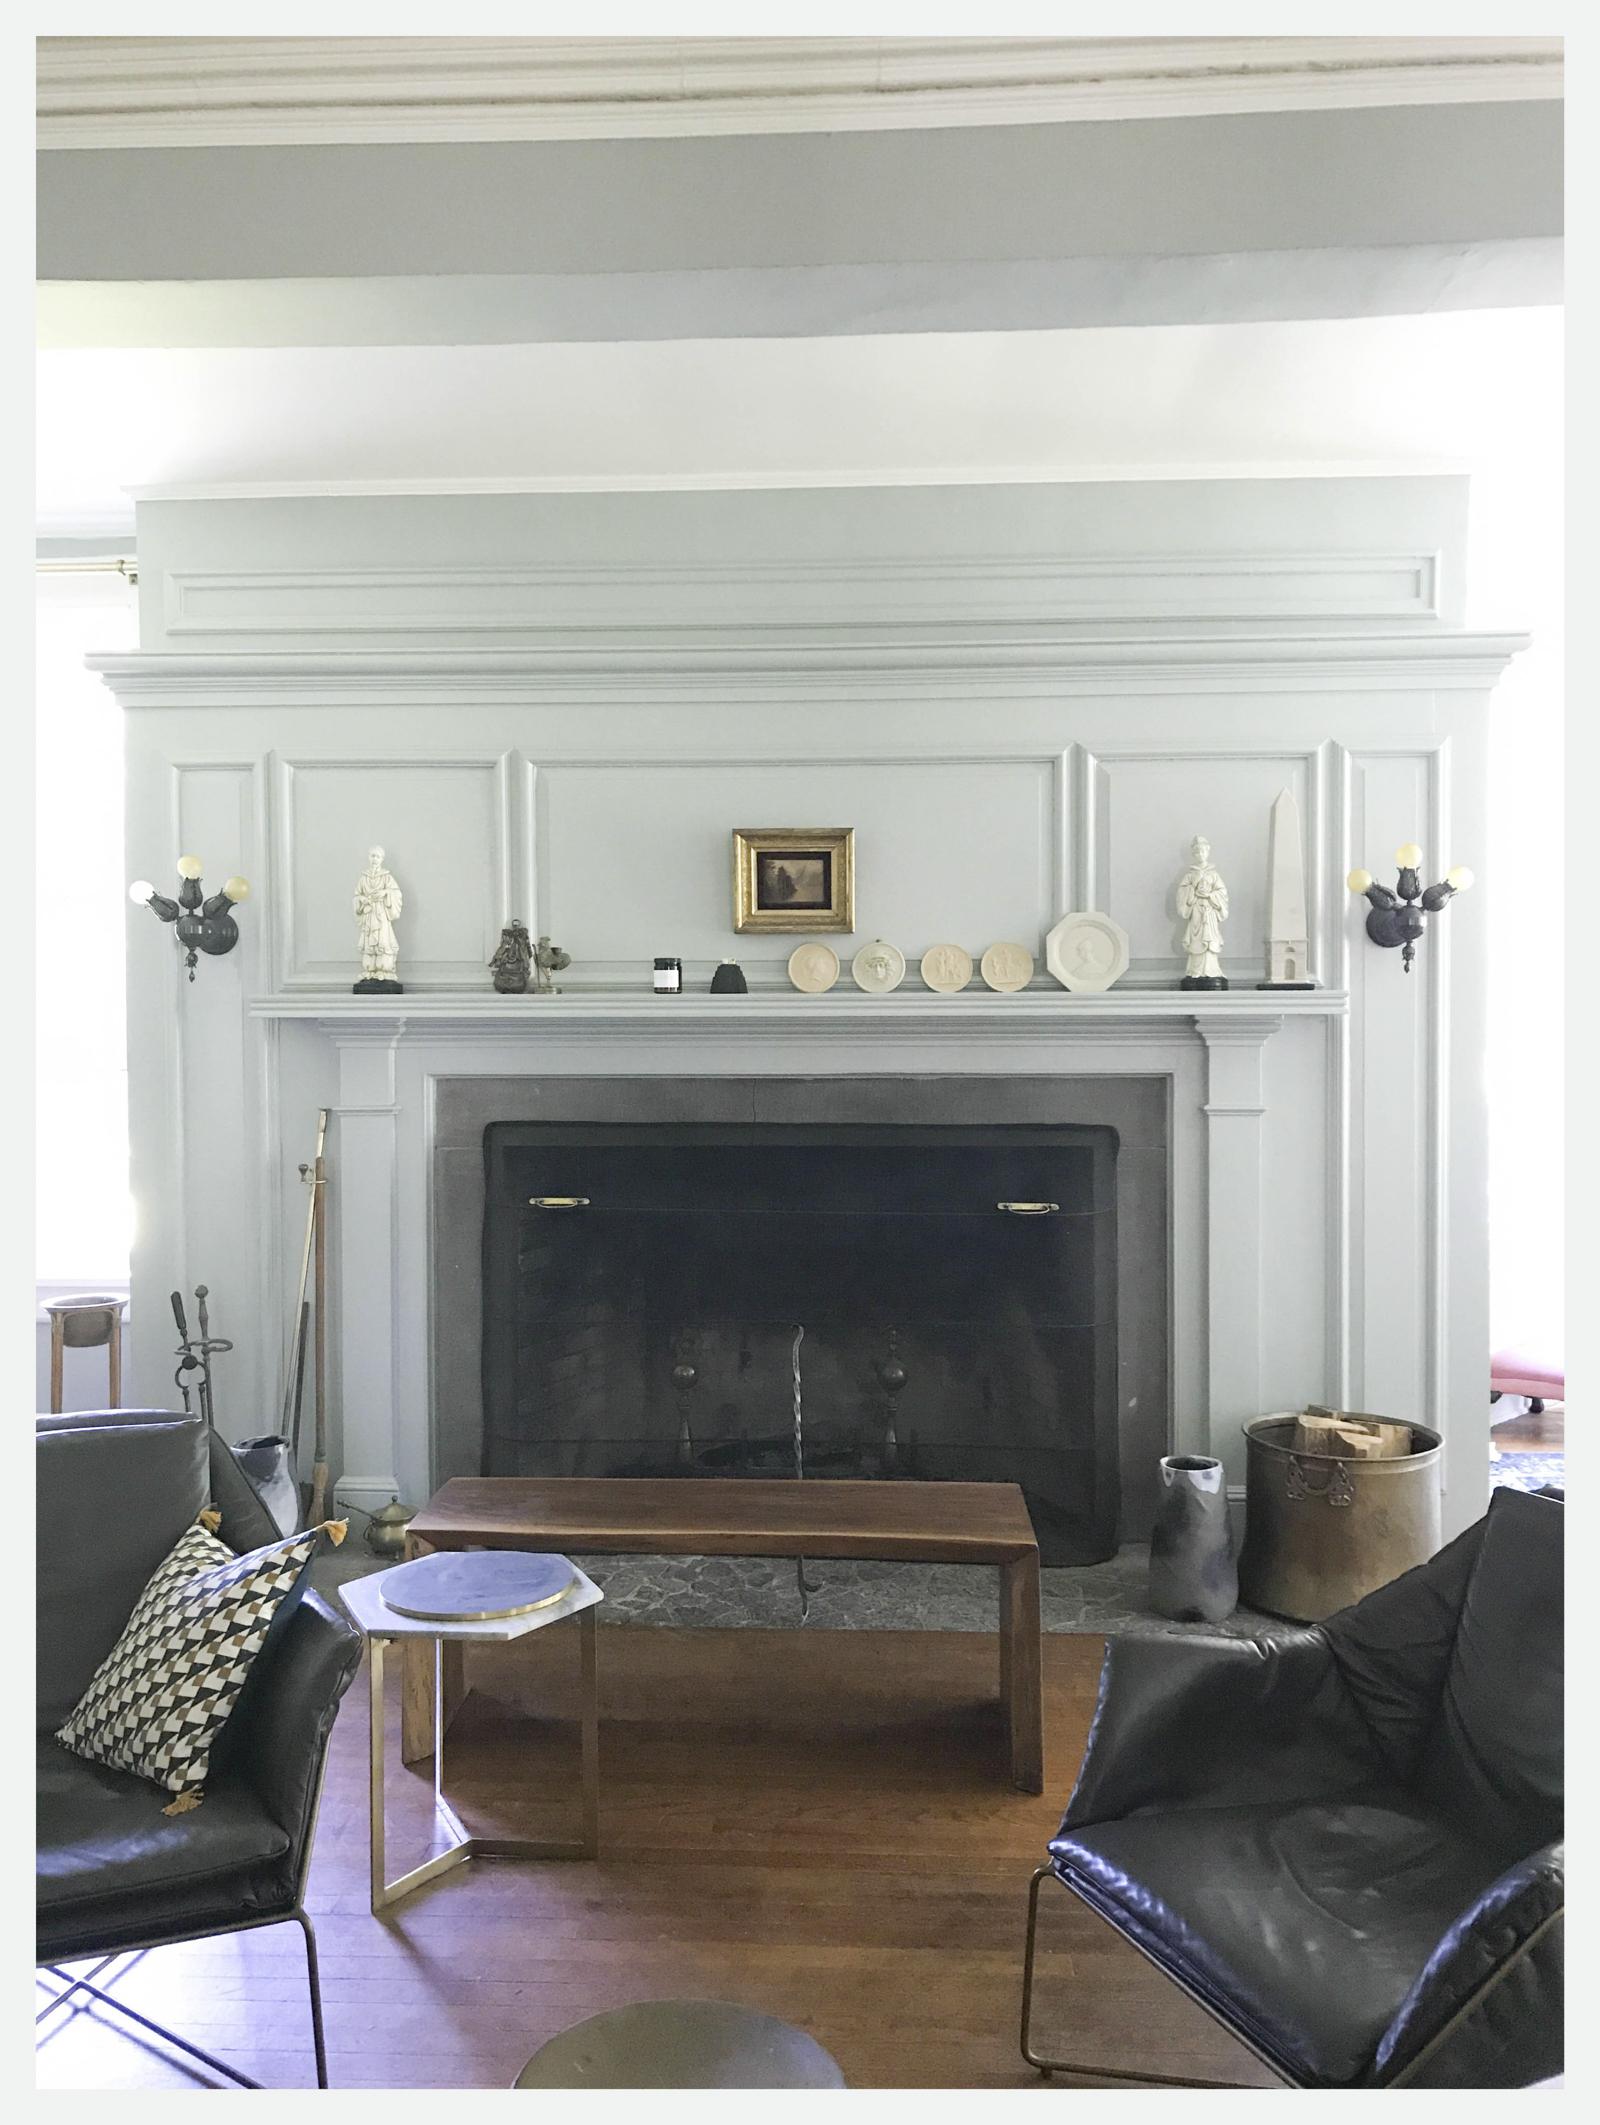 Before-The Fireplace Mantle